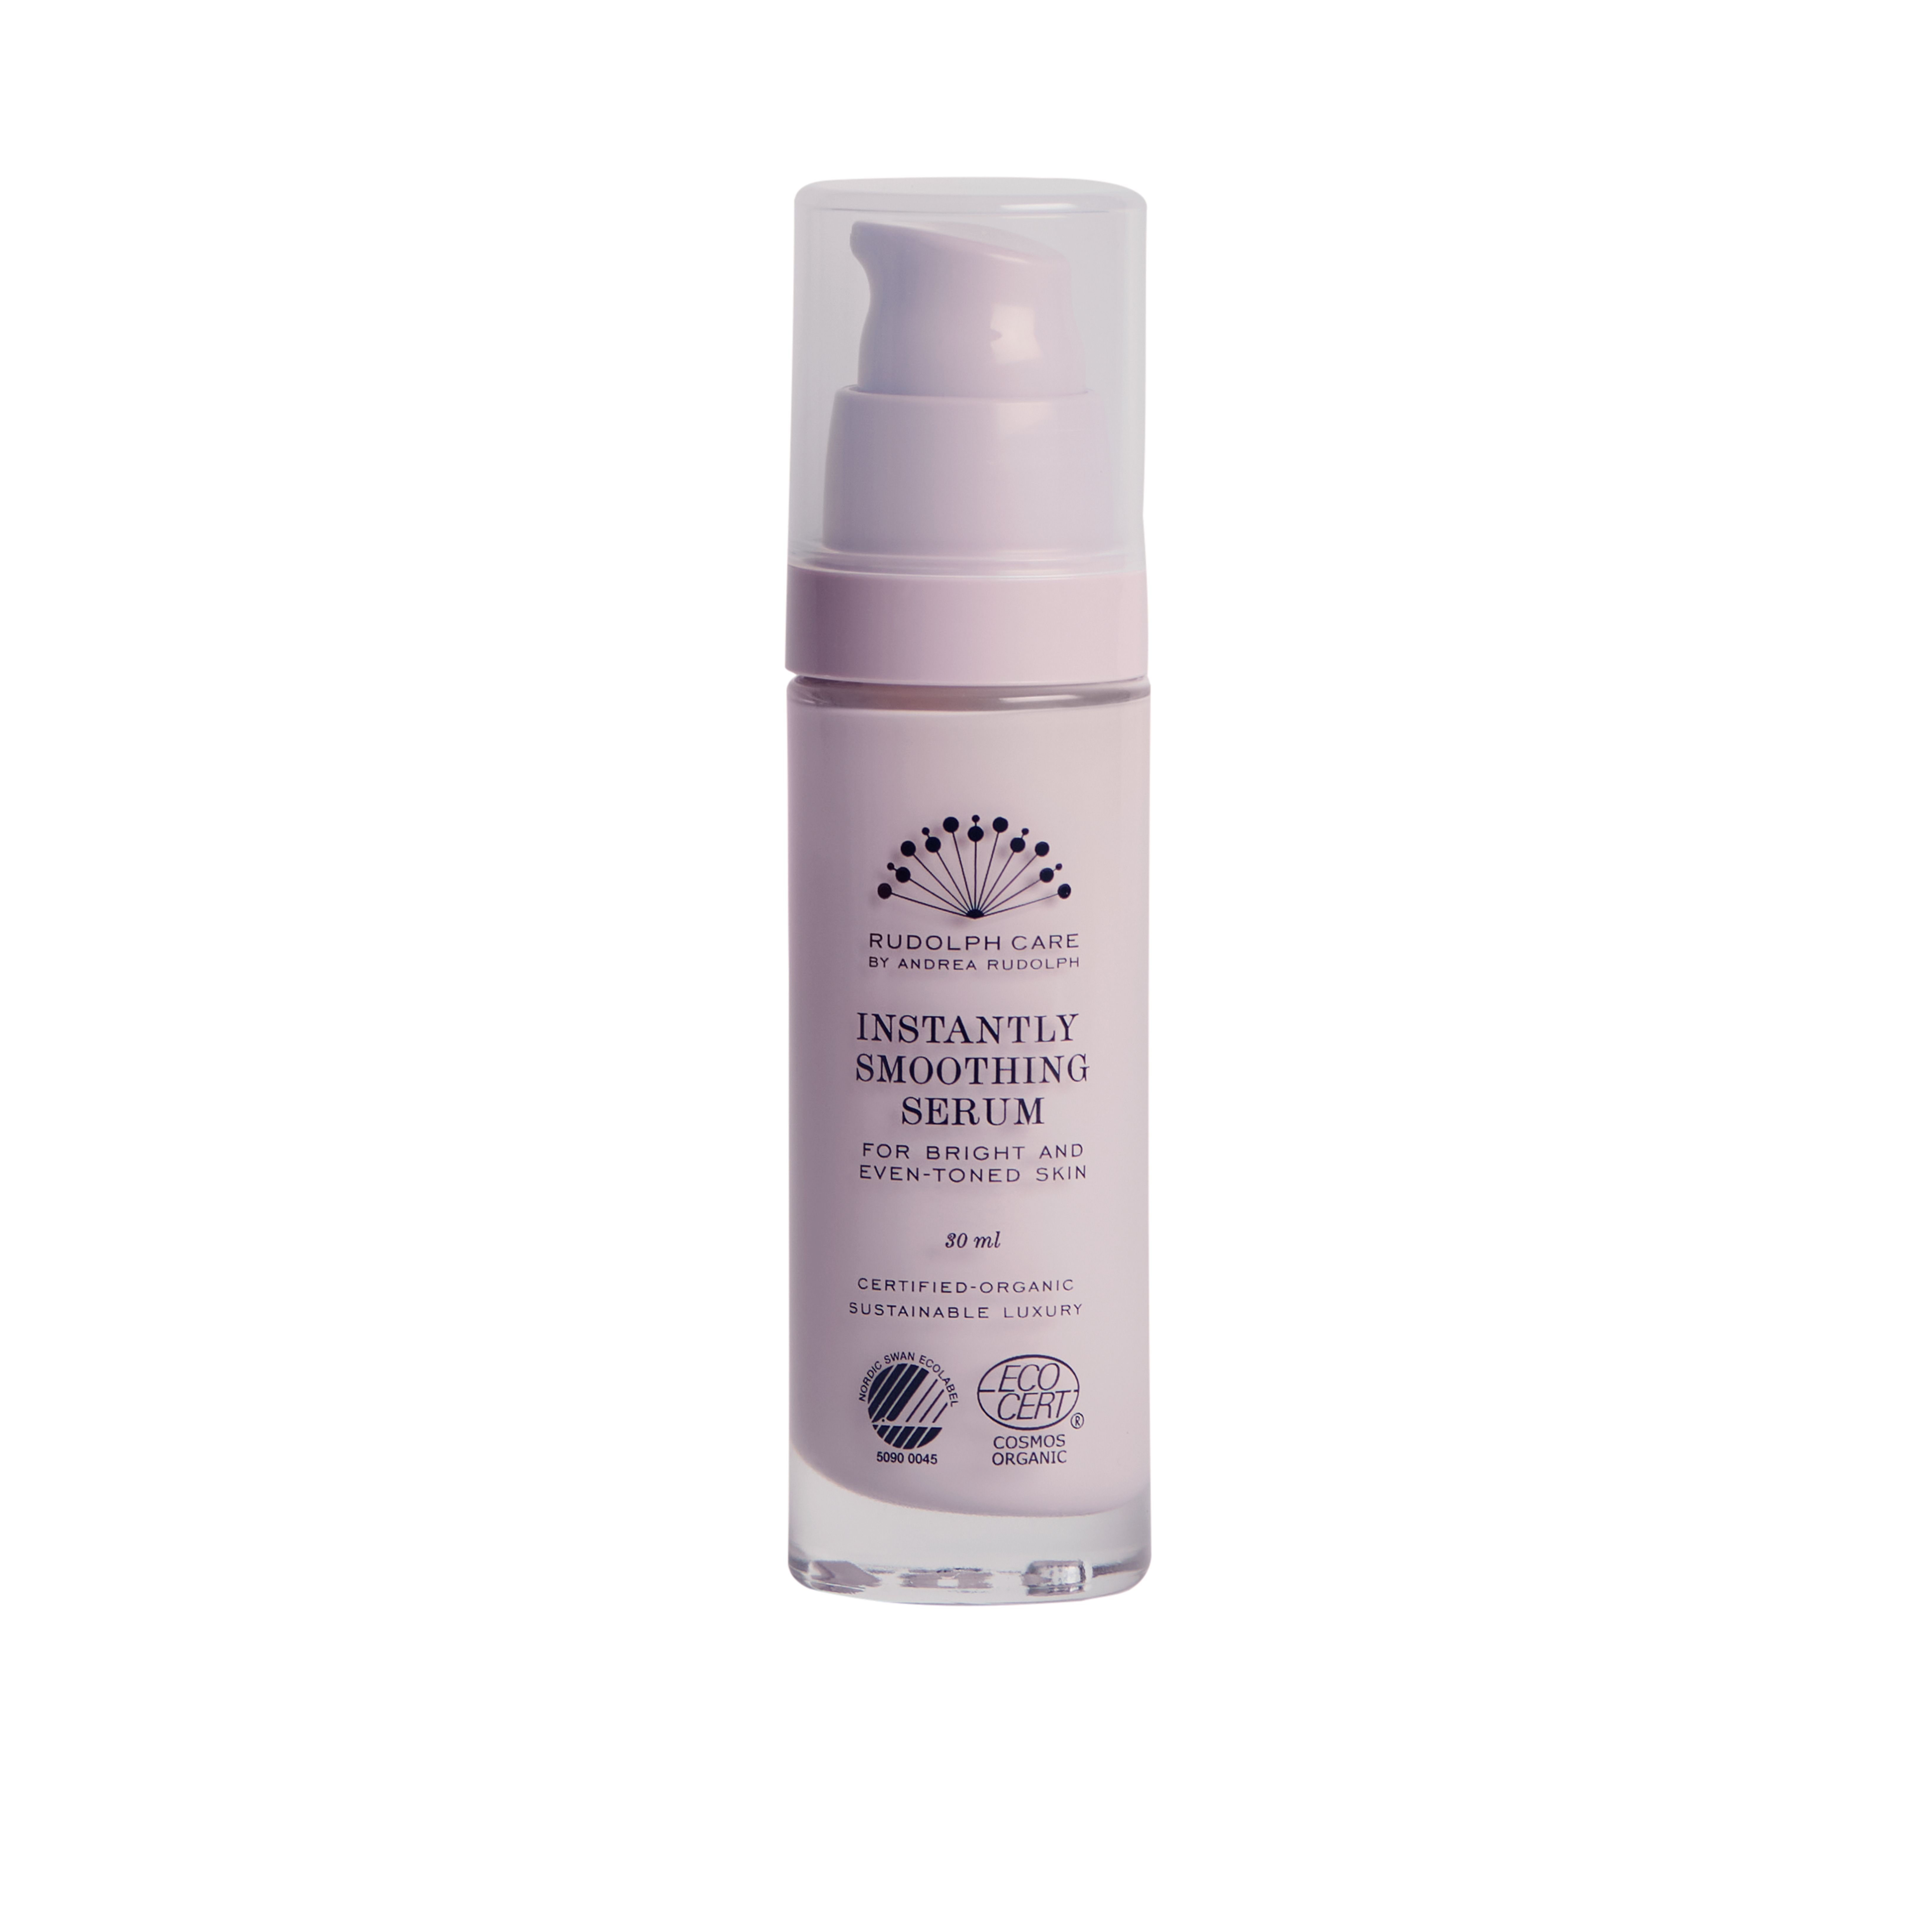 Rudolph Care Instantly Smoothing Serum, 30 ml